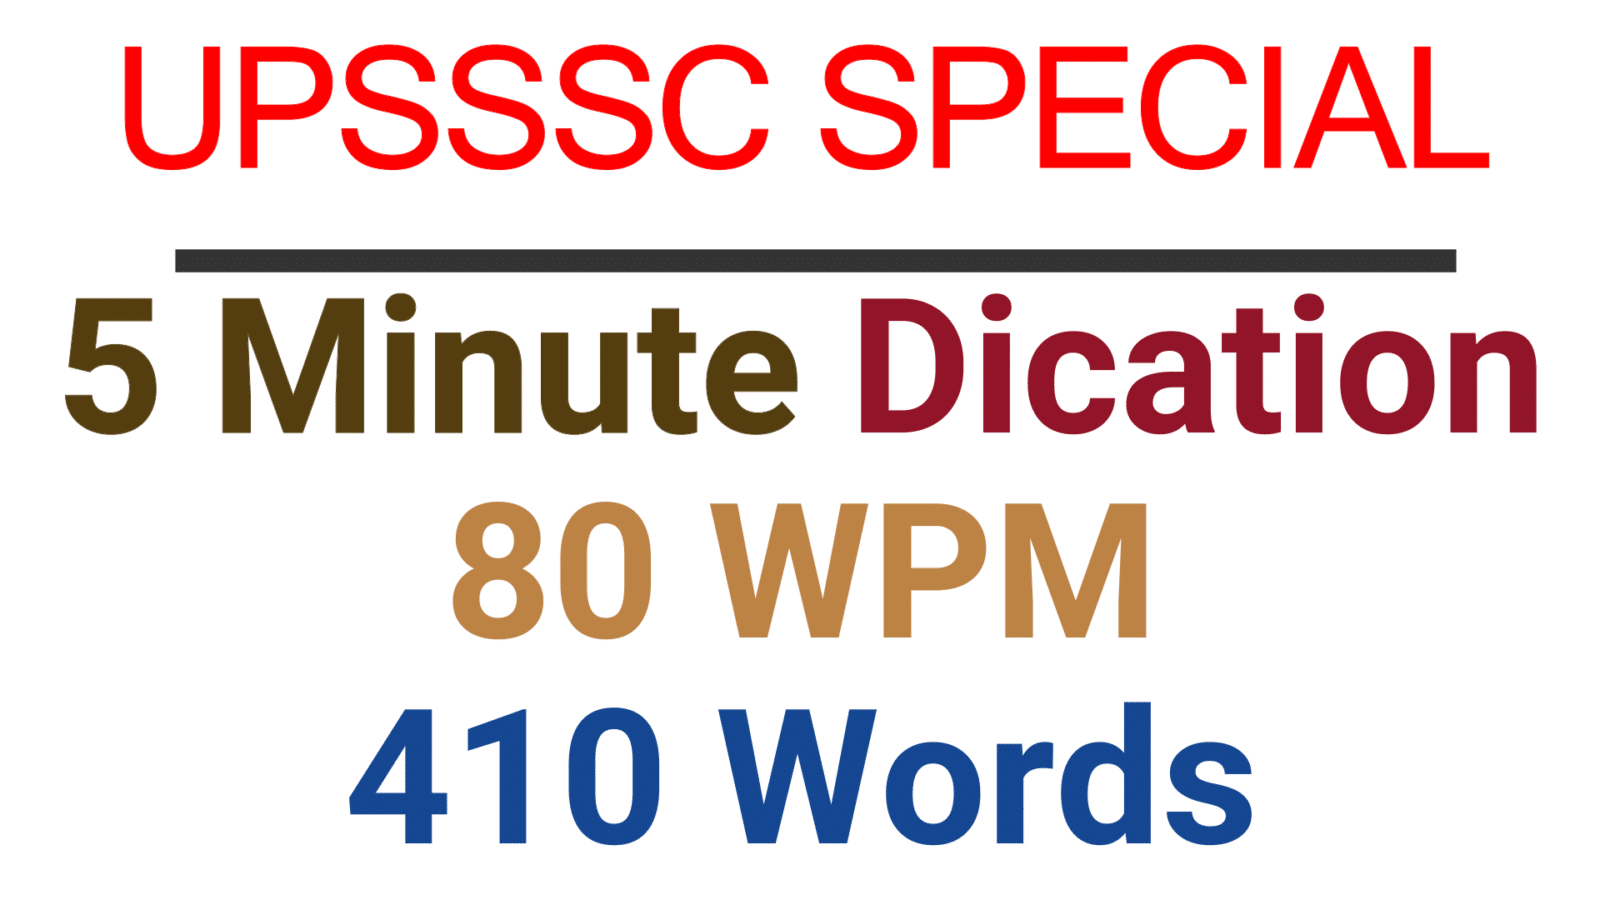 Hindi Shorthand Dictation 80 WPM 400 words